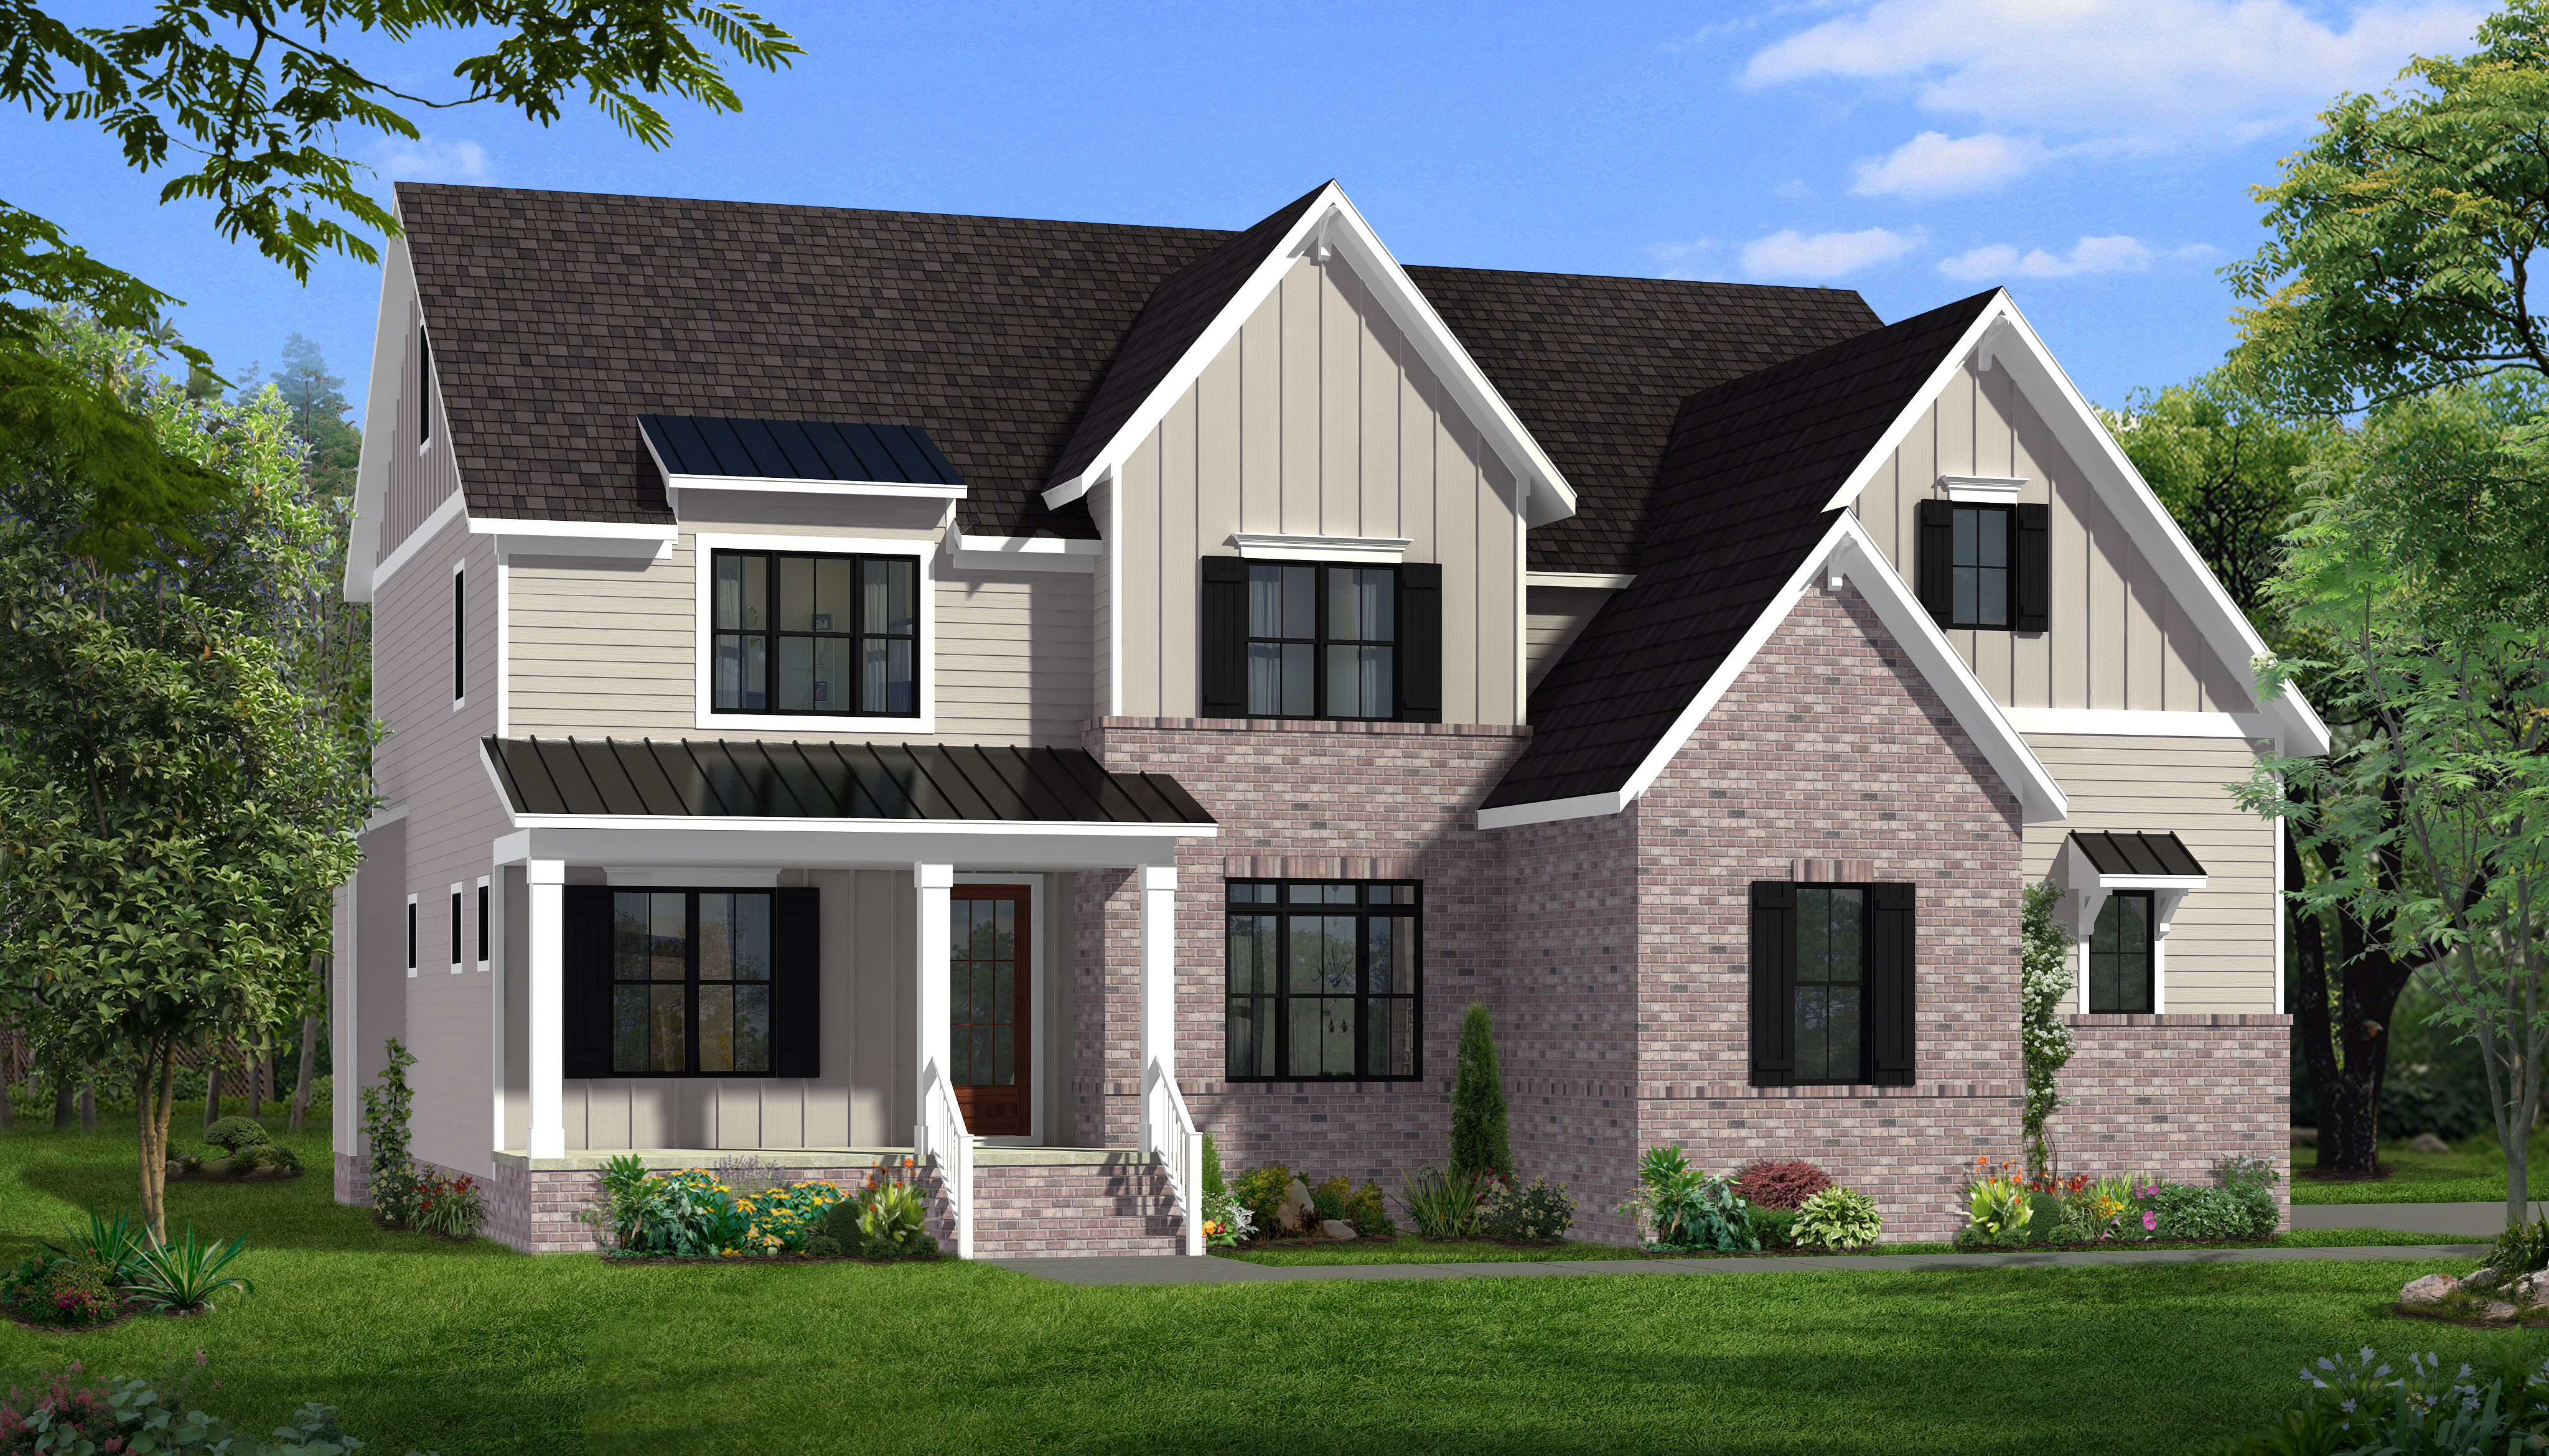 durham-color-rendering